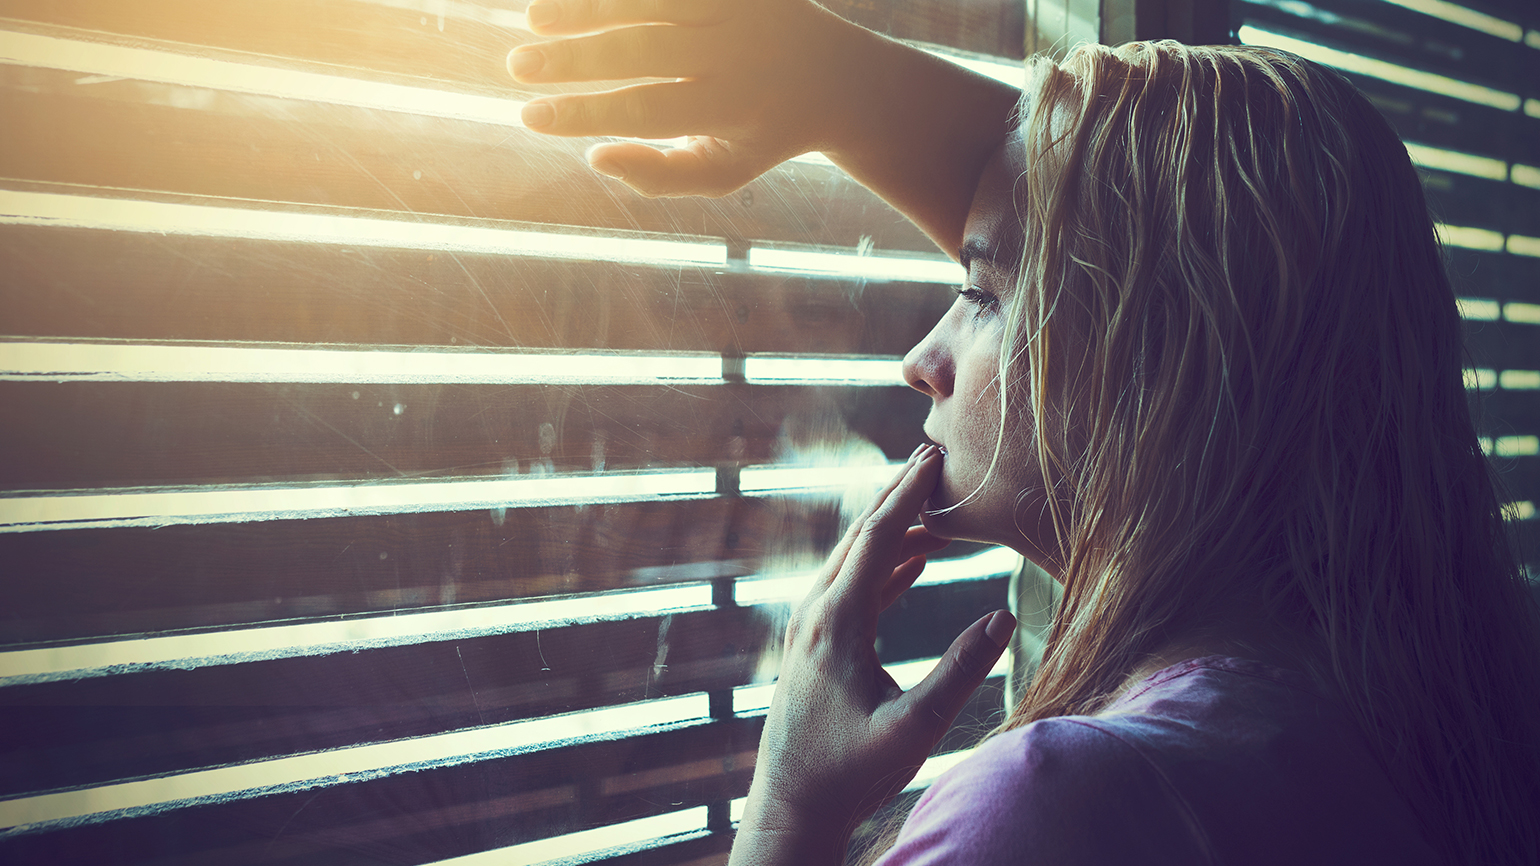 A grieving woman looks out her window through the blinds